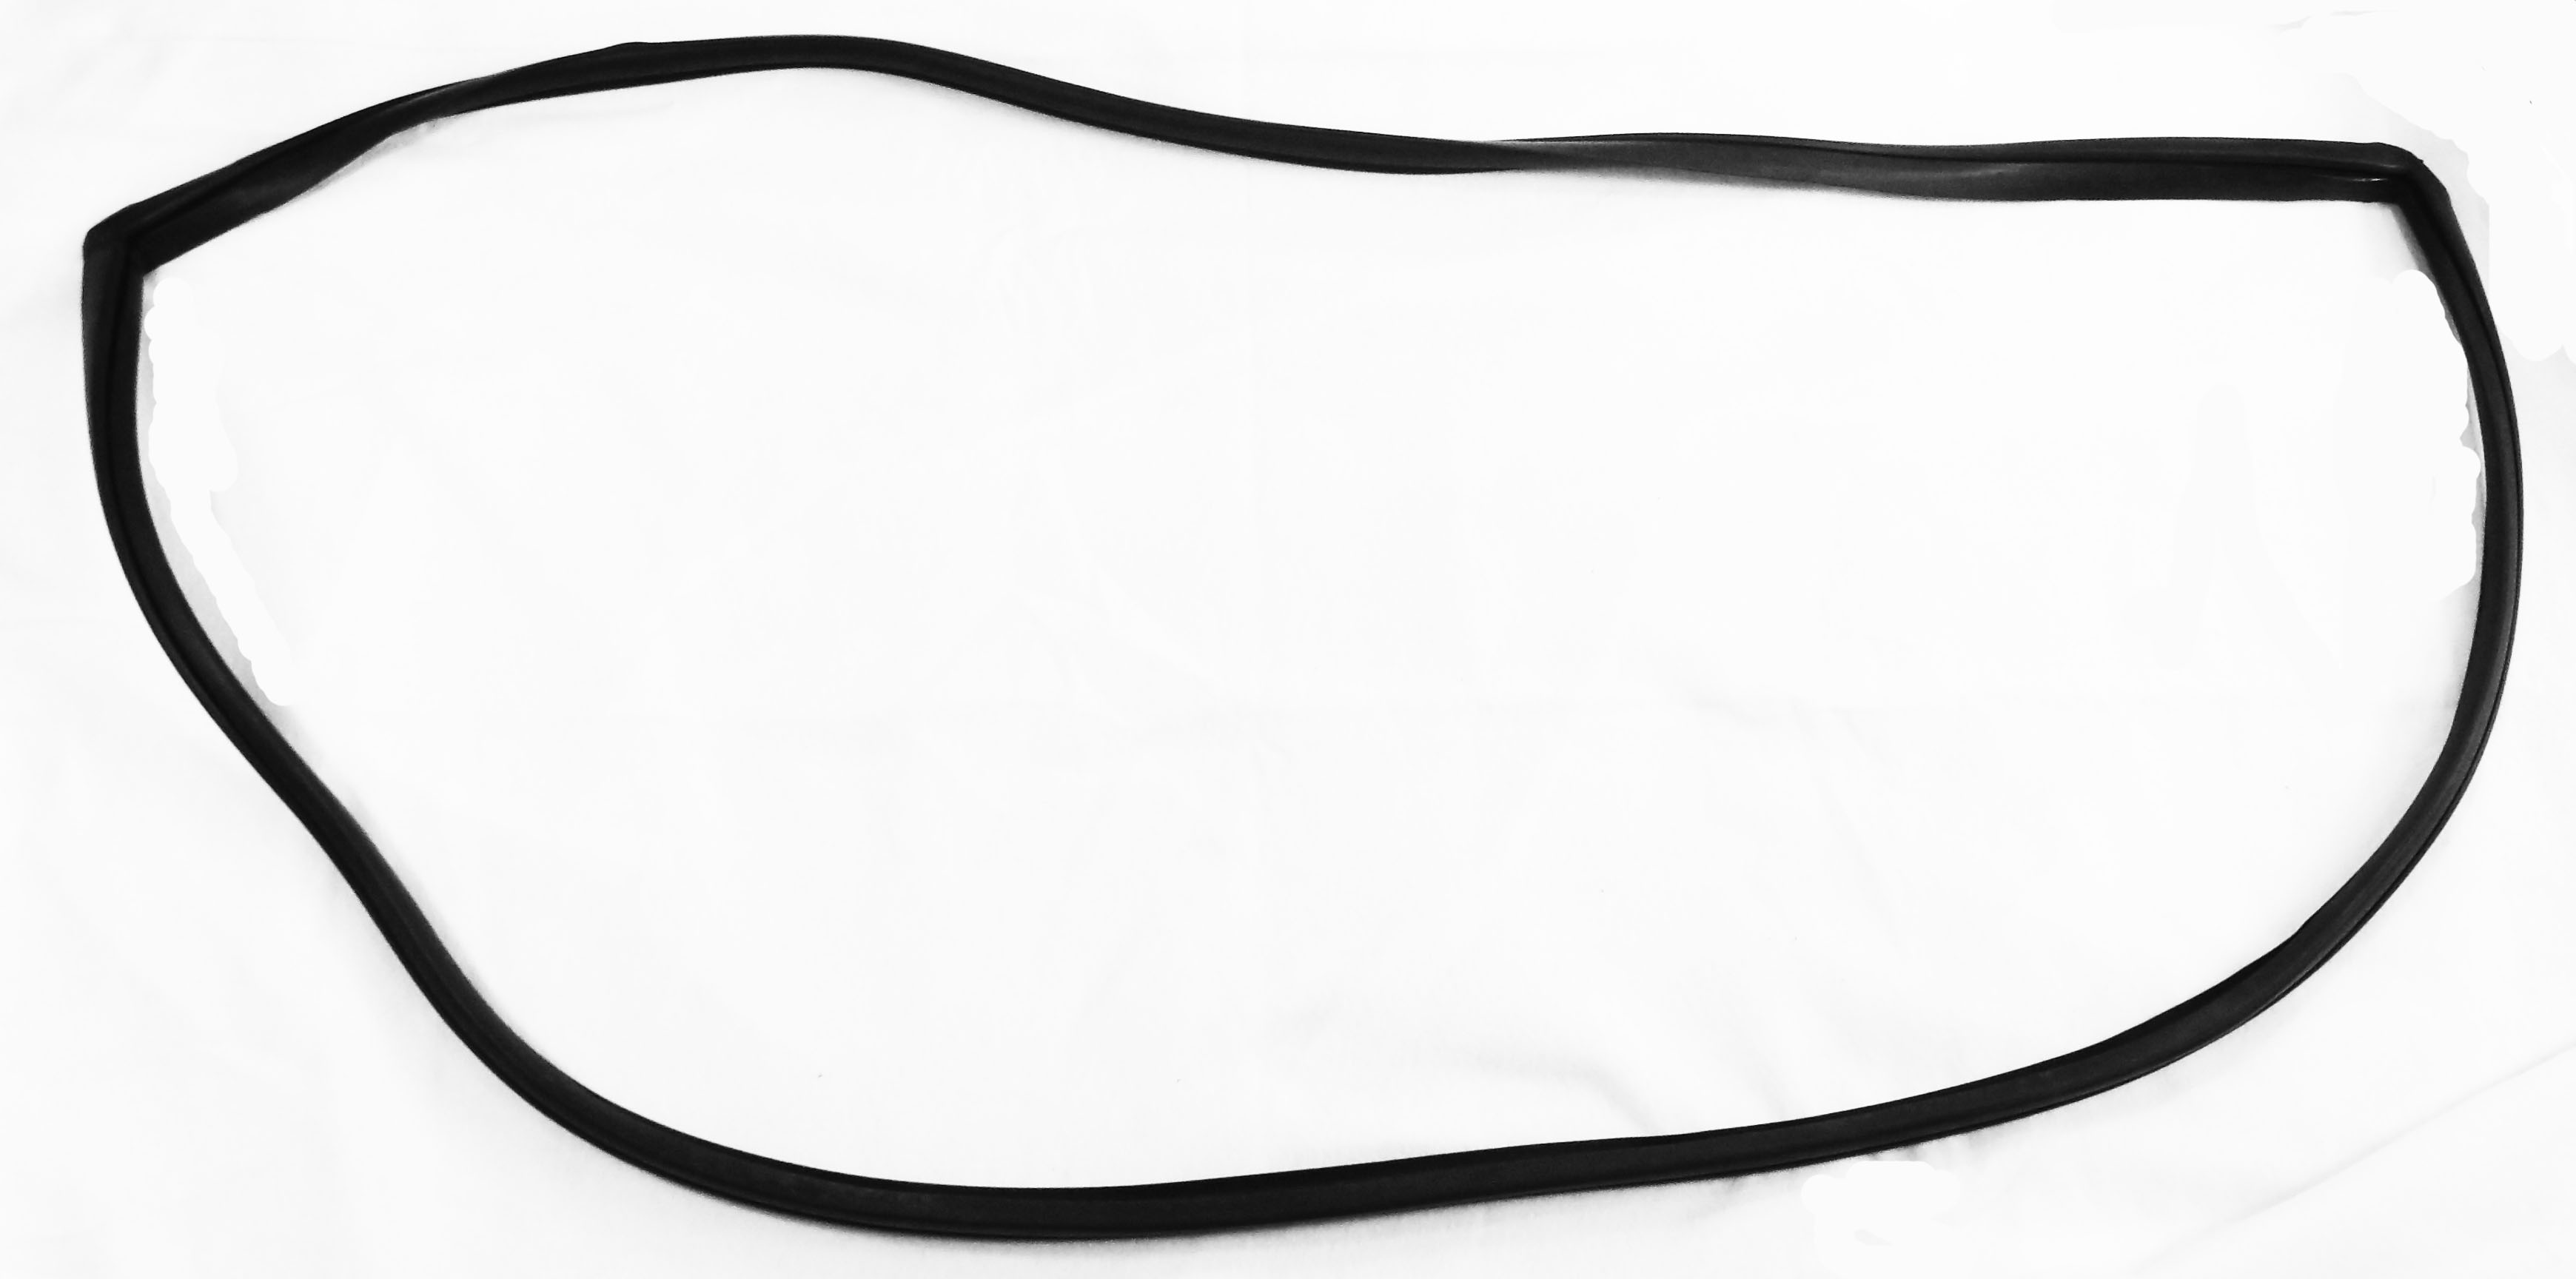 Trunk Seal For 1970-1972 Pontiac Ventura